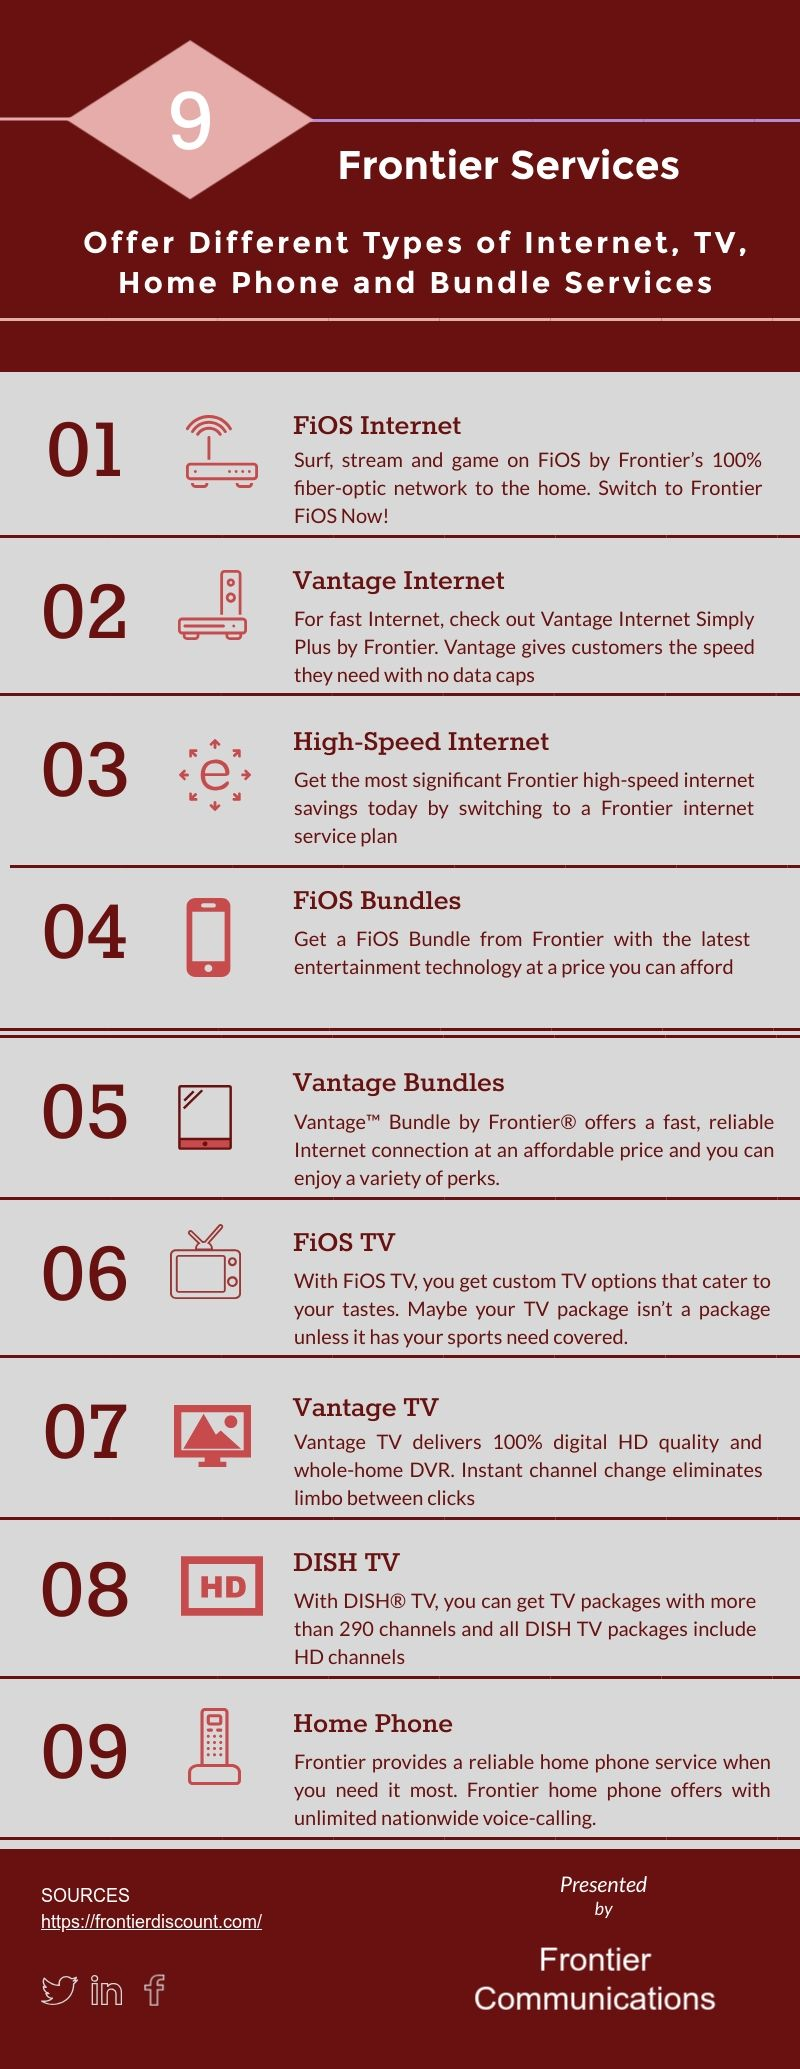 Frontier Communications Offer Different Types Of Internet Tv